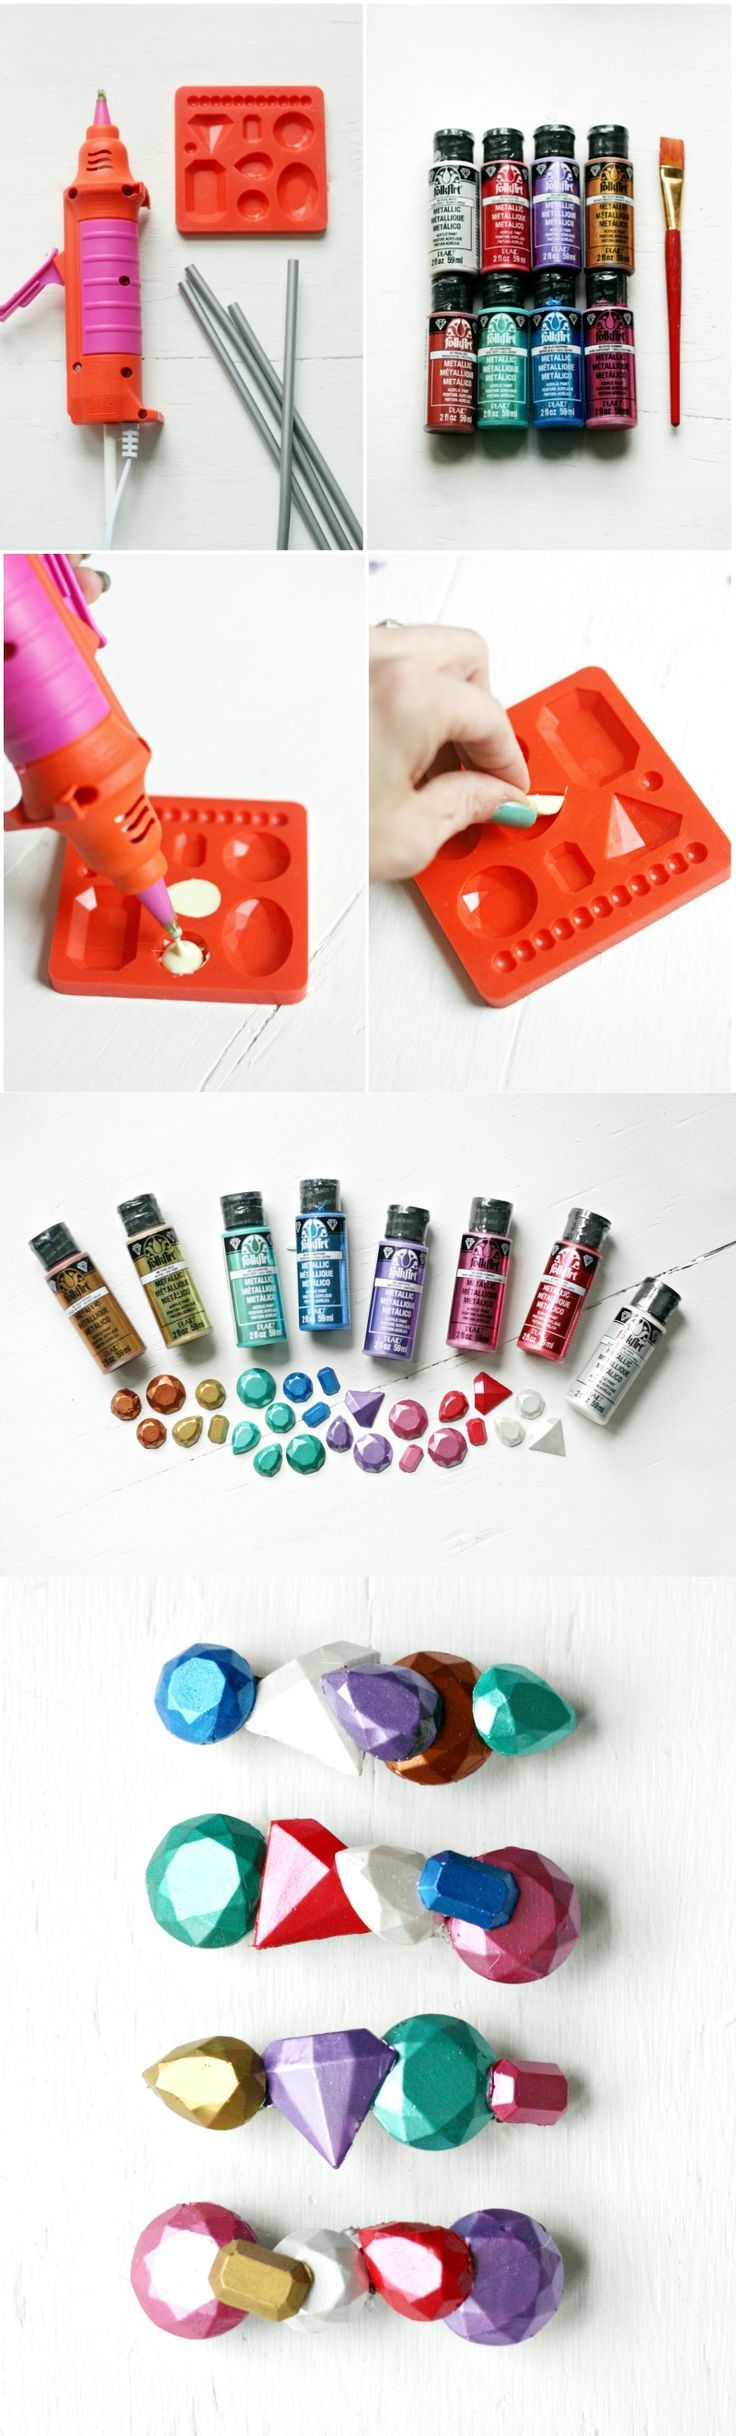 "Create your own hair accessories with Mod Melts and Molds! You'll love these rainbow faux ""gems"" - you can make a ton of them at once. They make great gifts!"